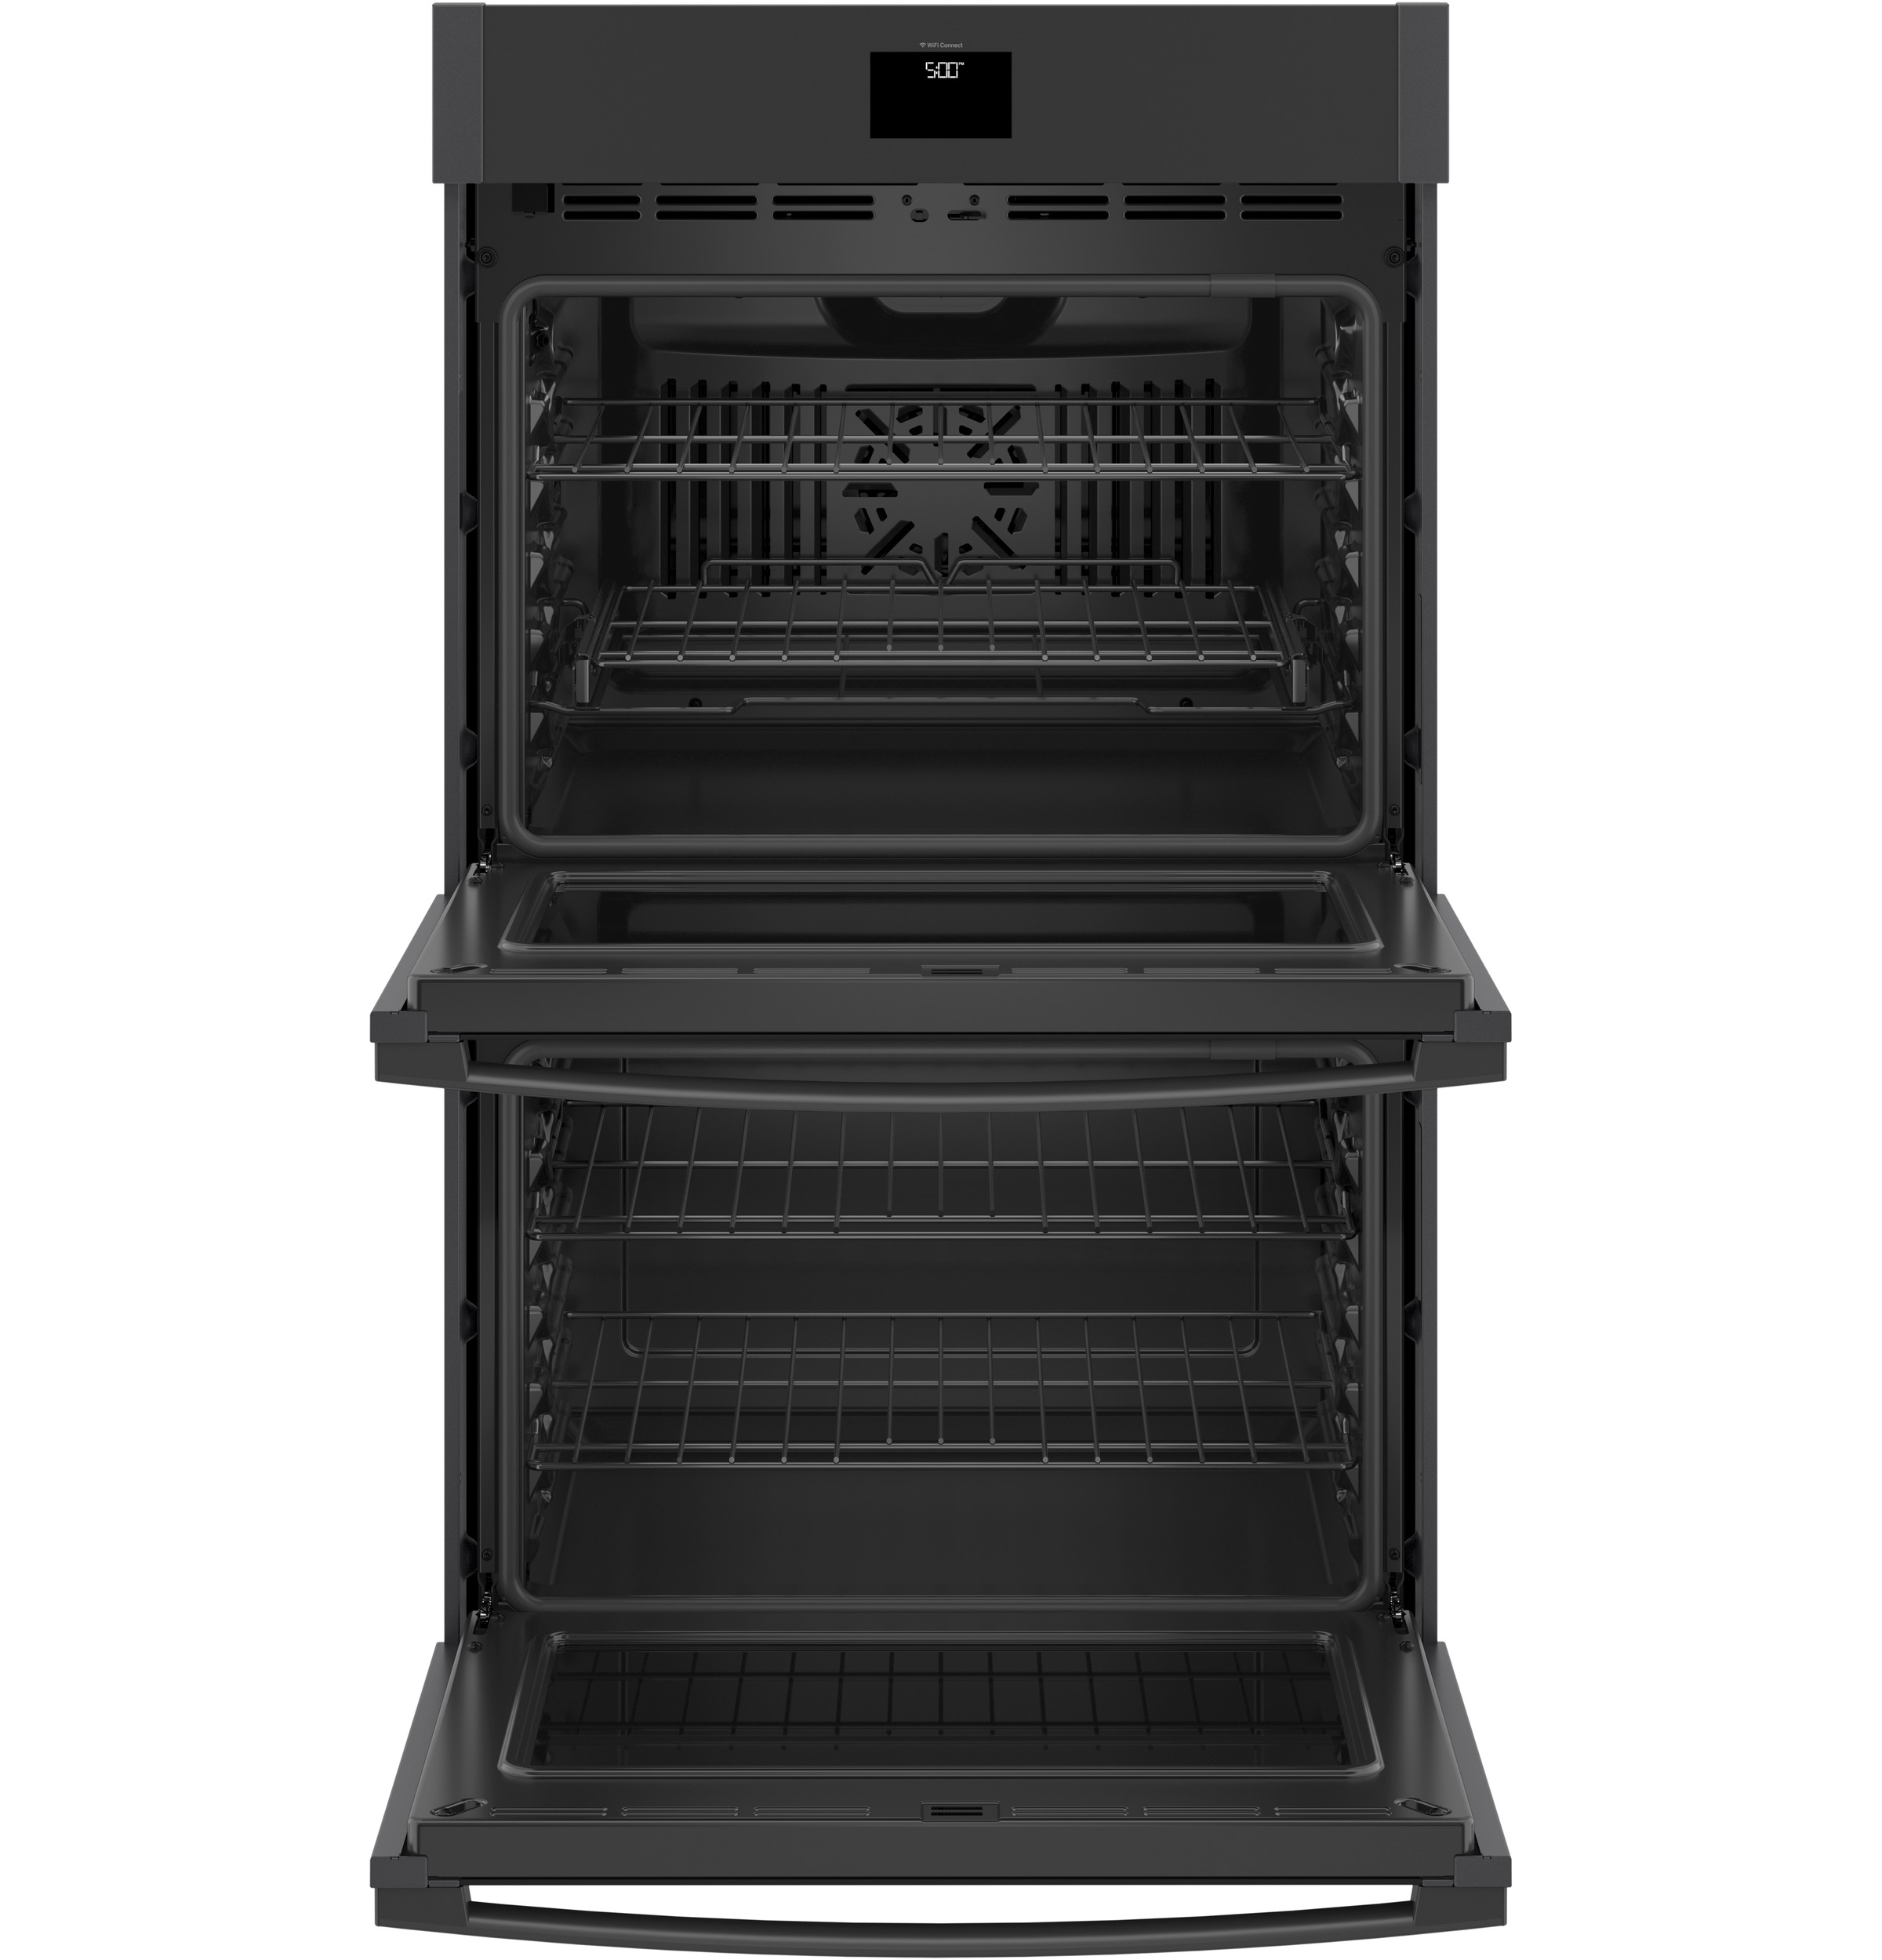 "Model: JTD5000FNDS | GE GE® 30"" Smart Built-In Self-Clean Convection Double Wall Oven with Never Scrub Racks"